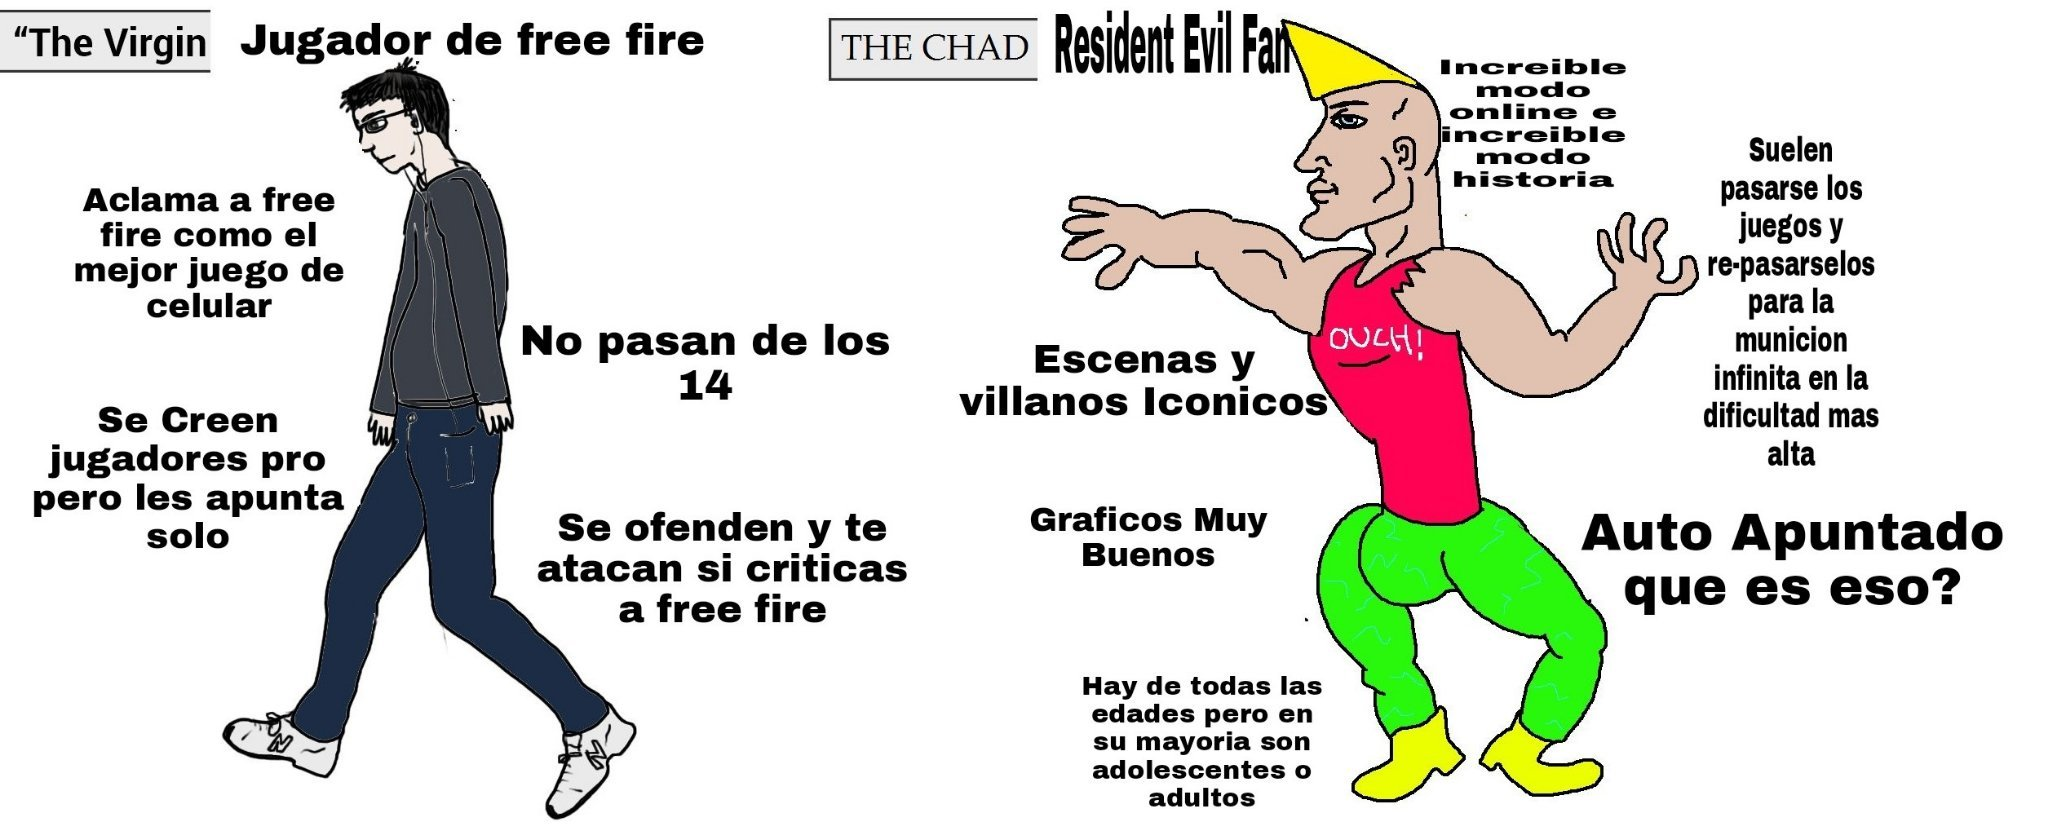 mi primer virgin vs chad - meme